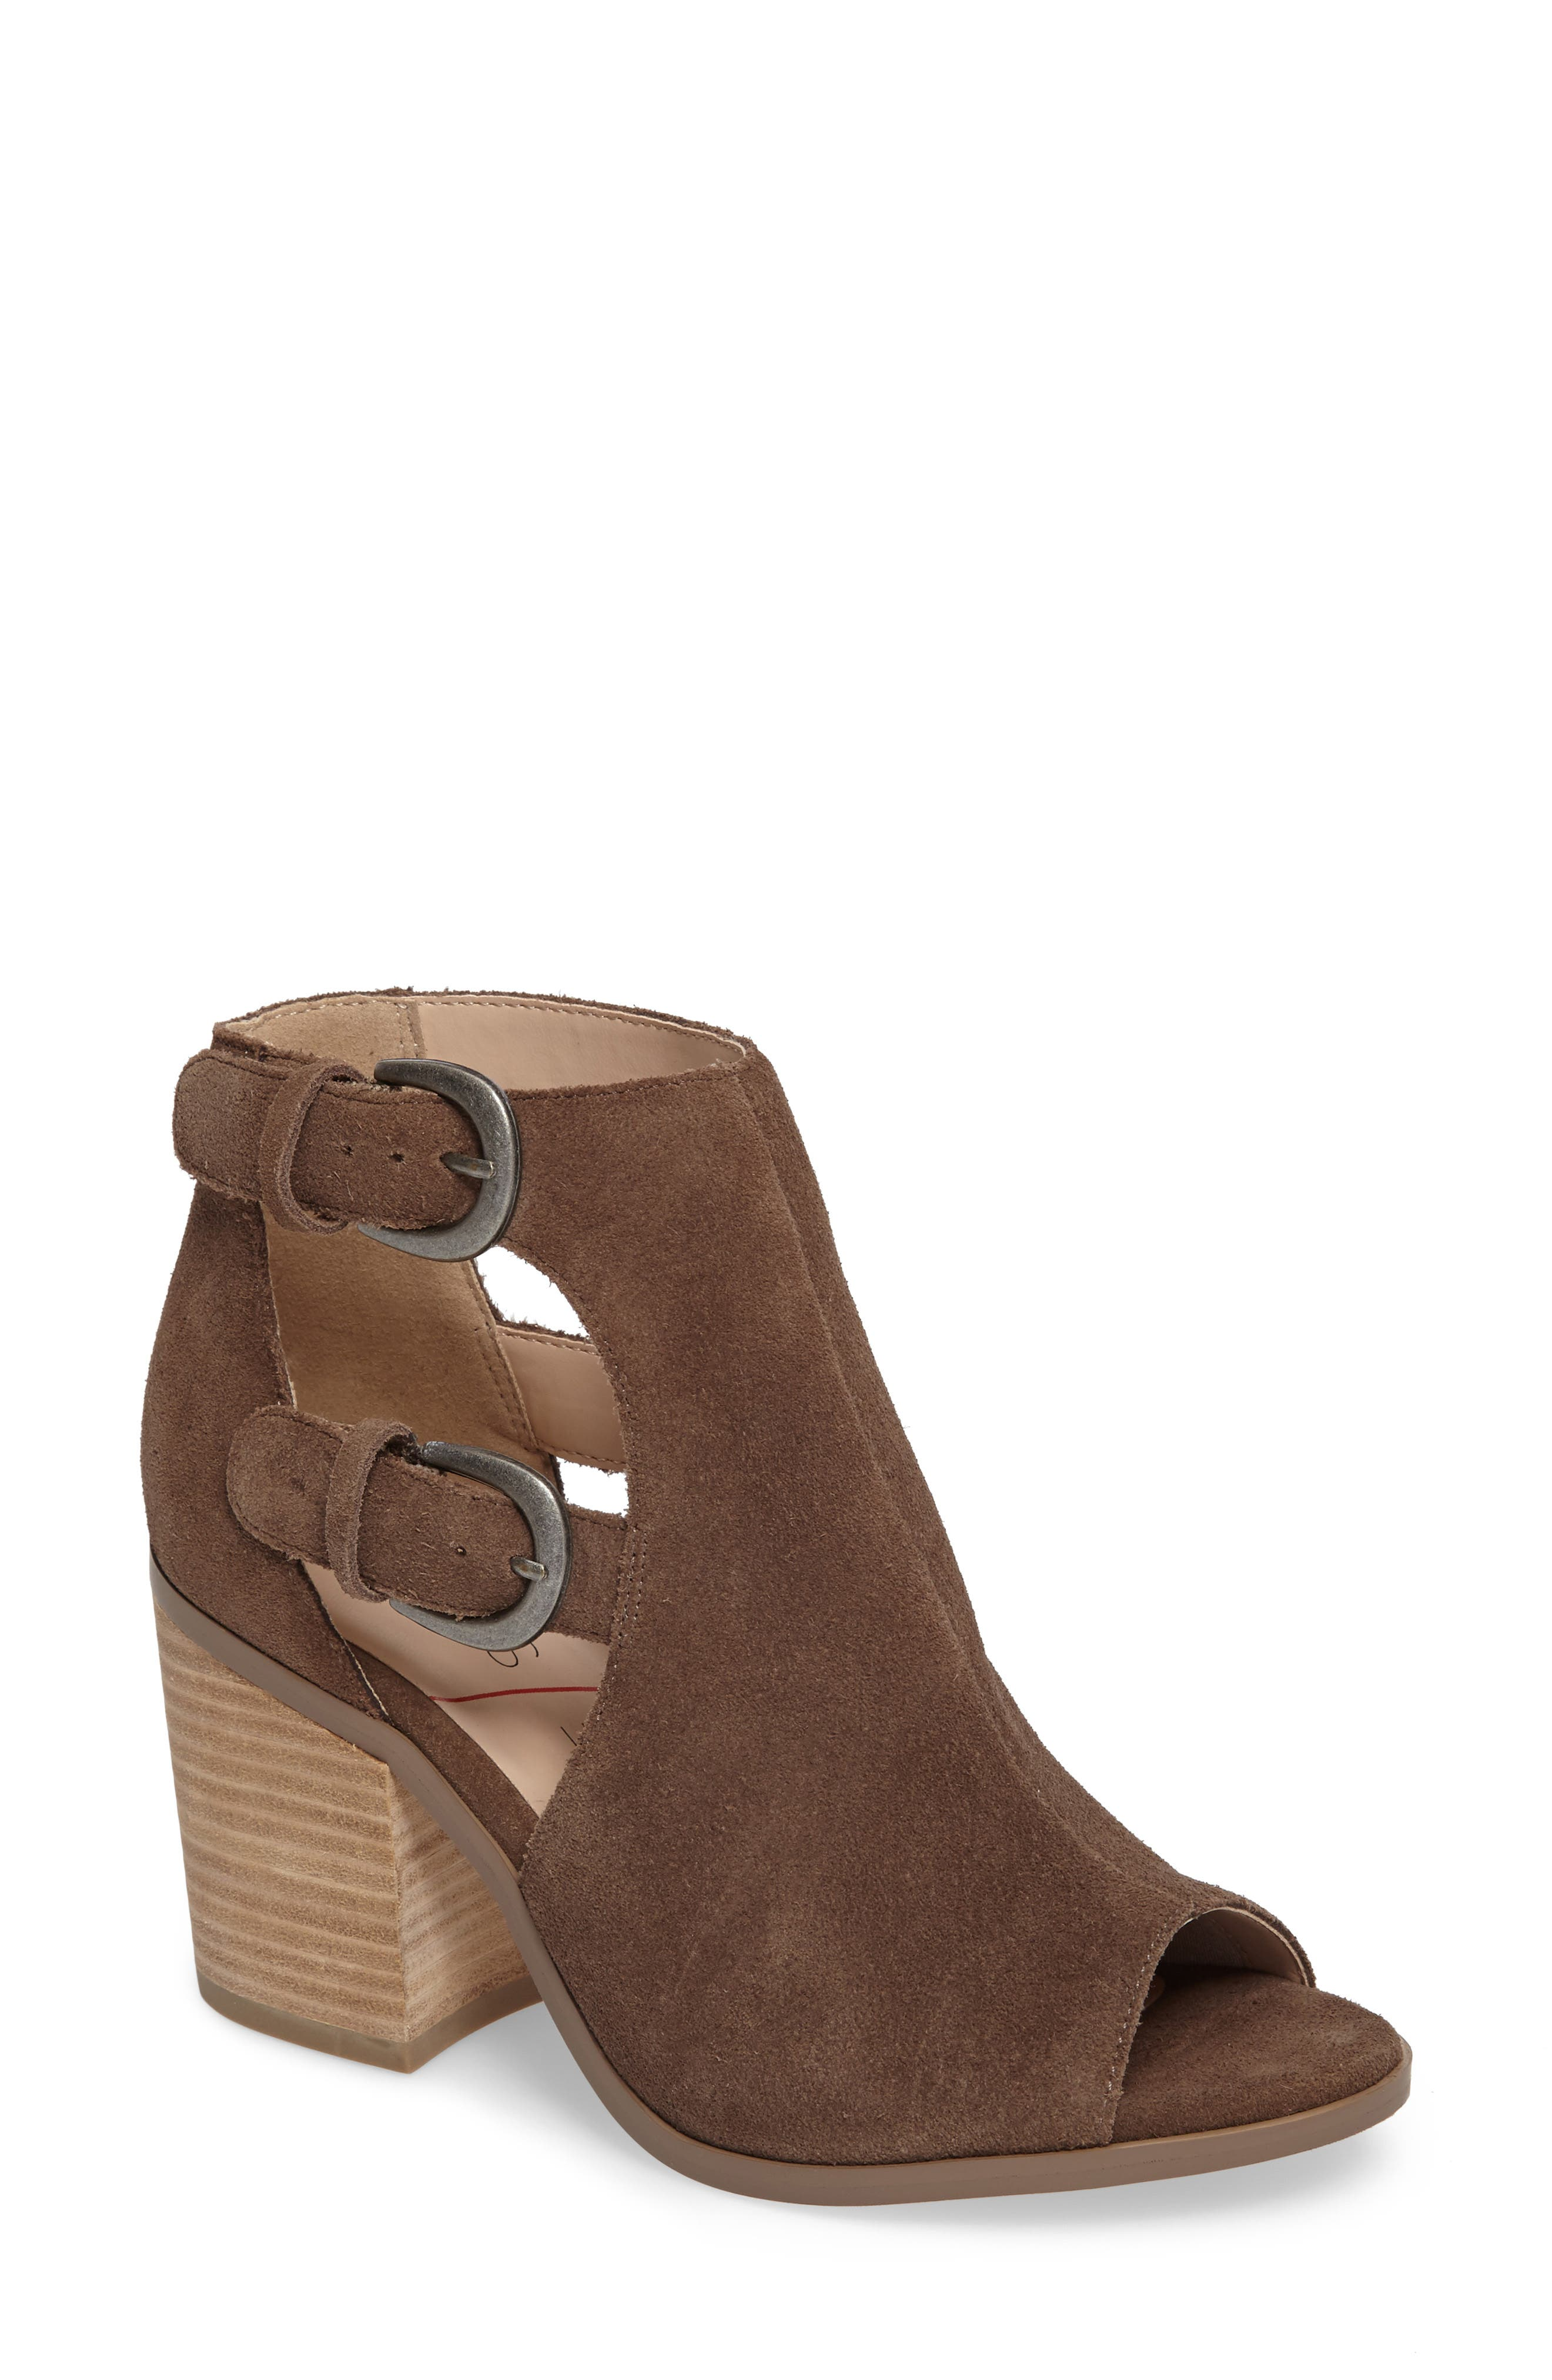 Alternate Image 1 Selected - Sole Society Hyperion Peep Toe Bootie (Women)